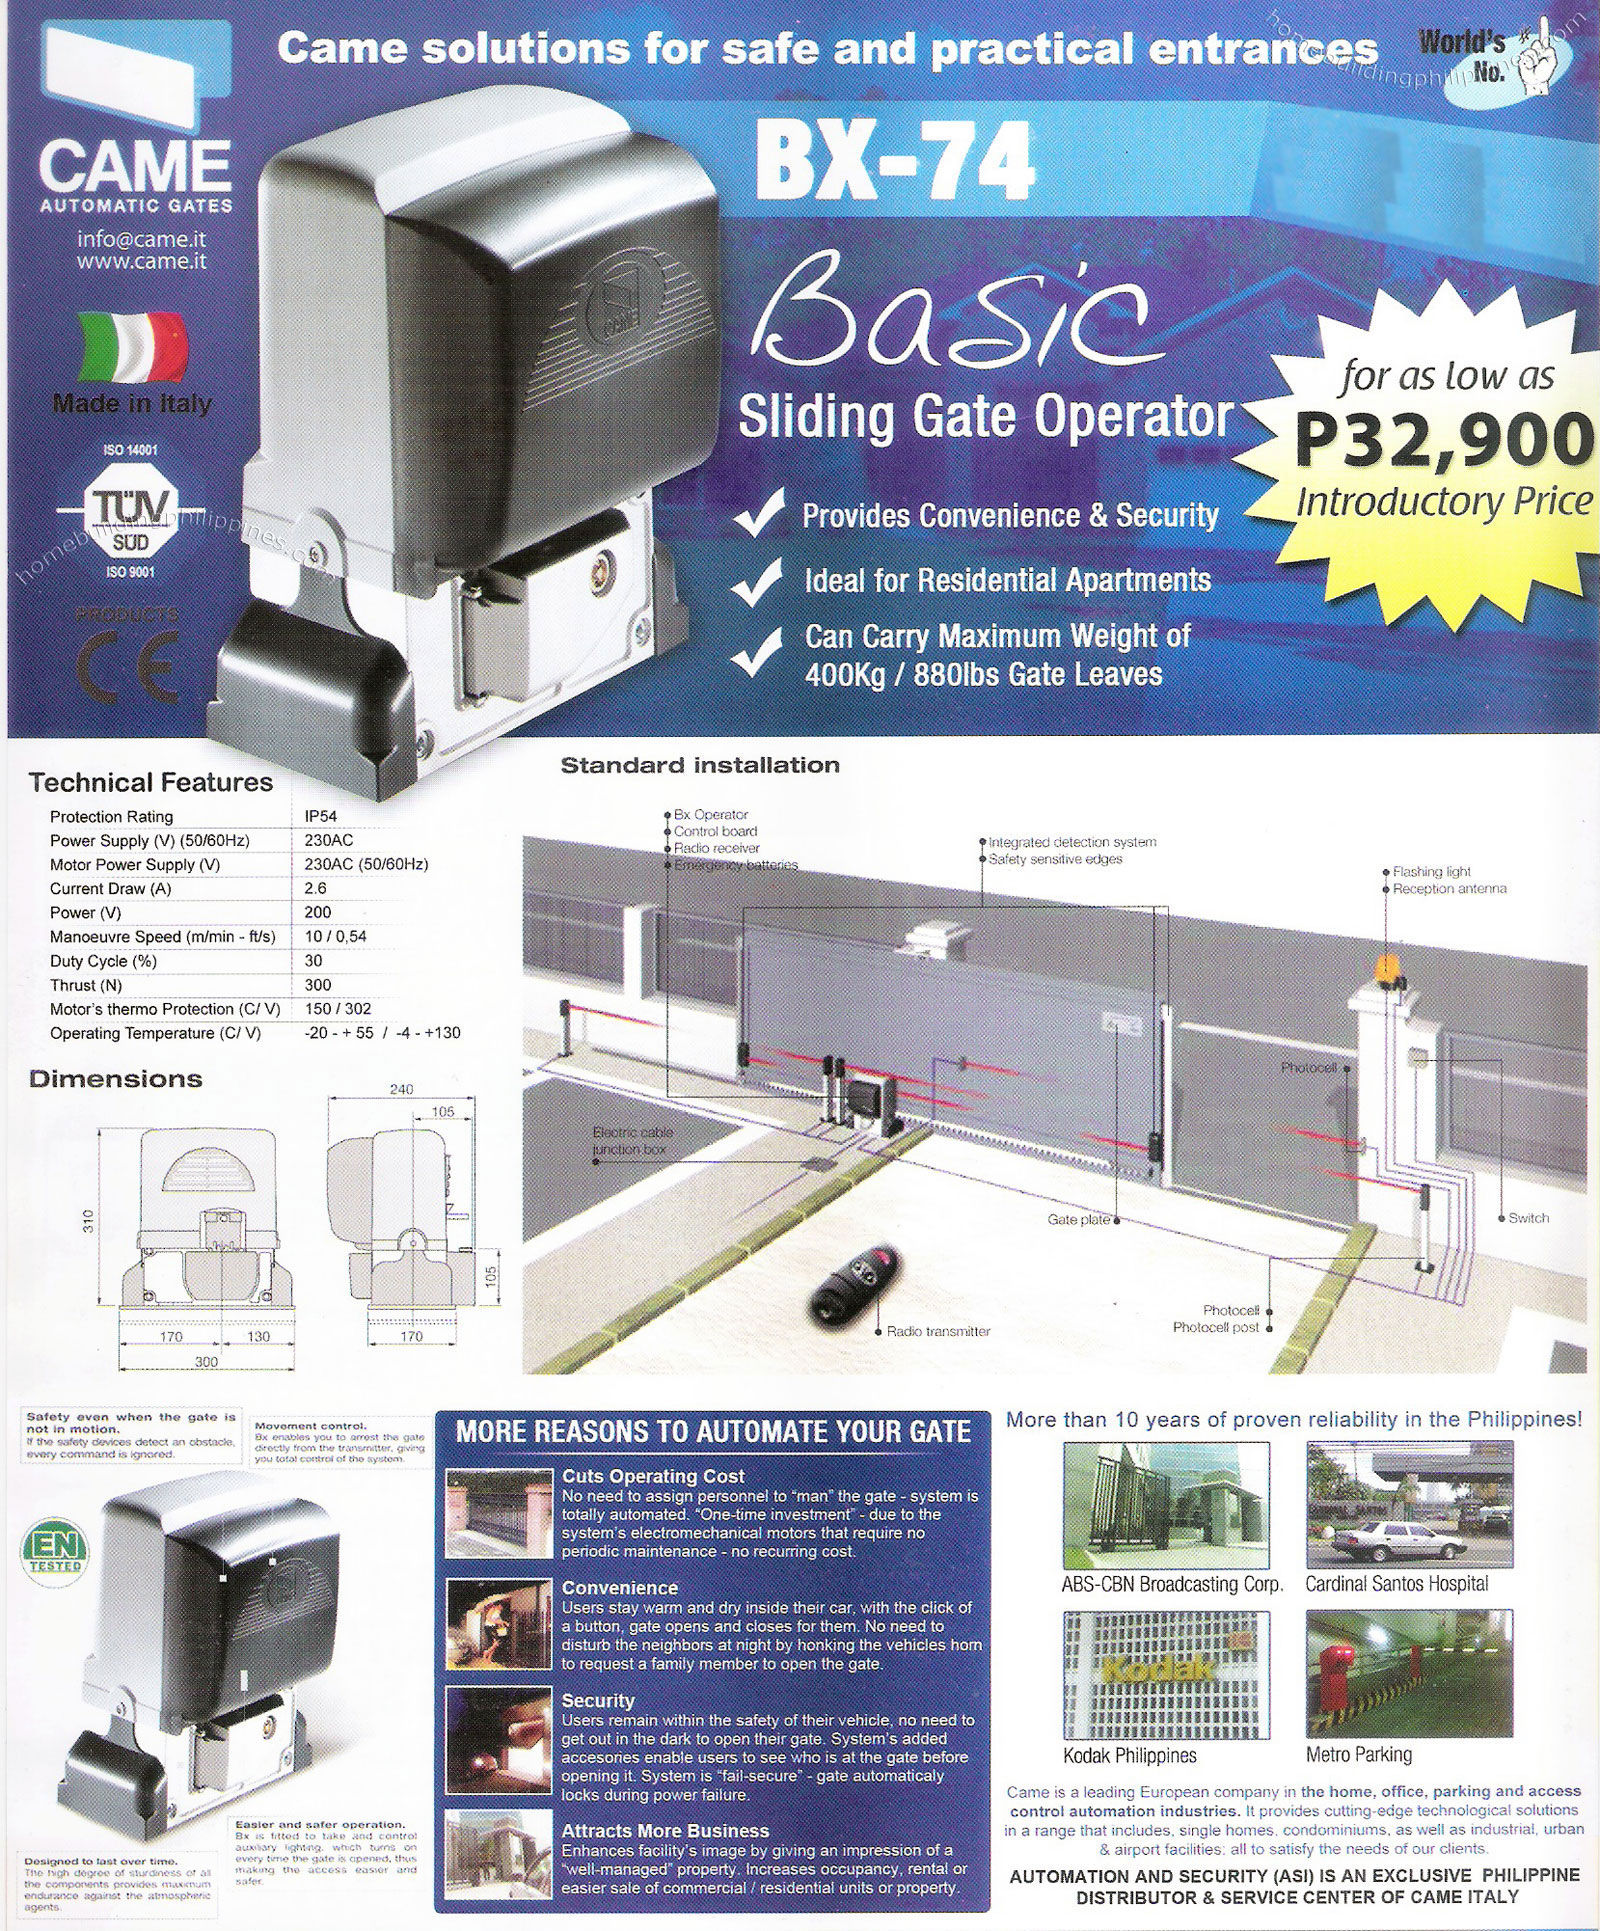 Came Automatic Sliding Gate Operator System Philippines